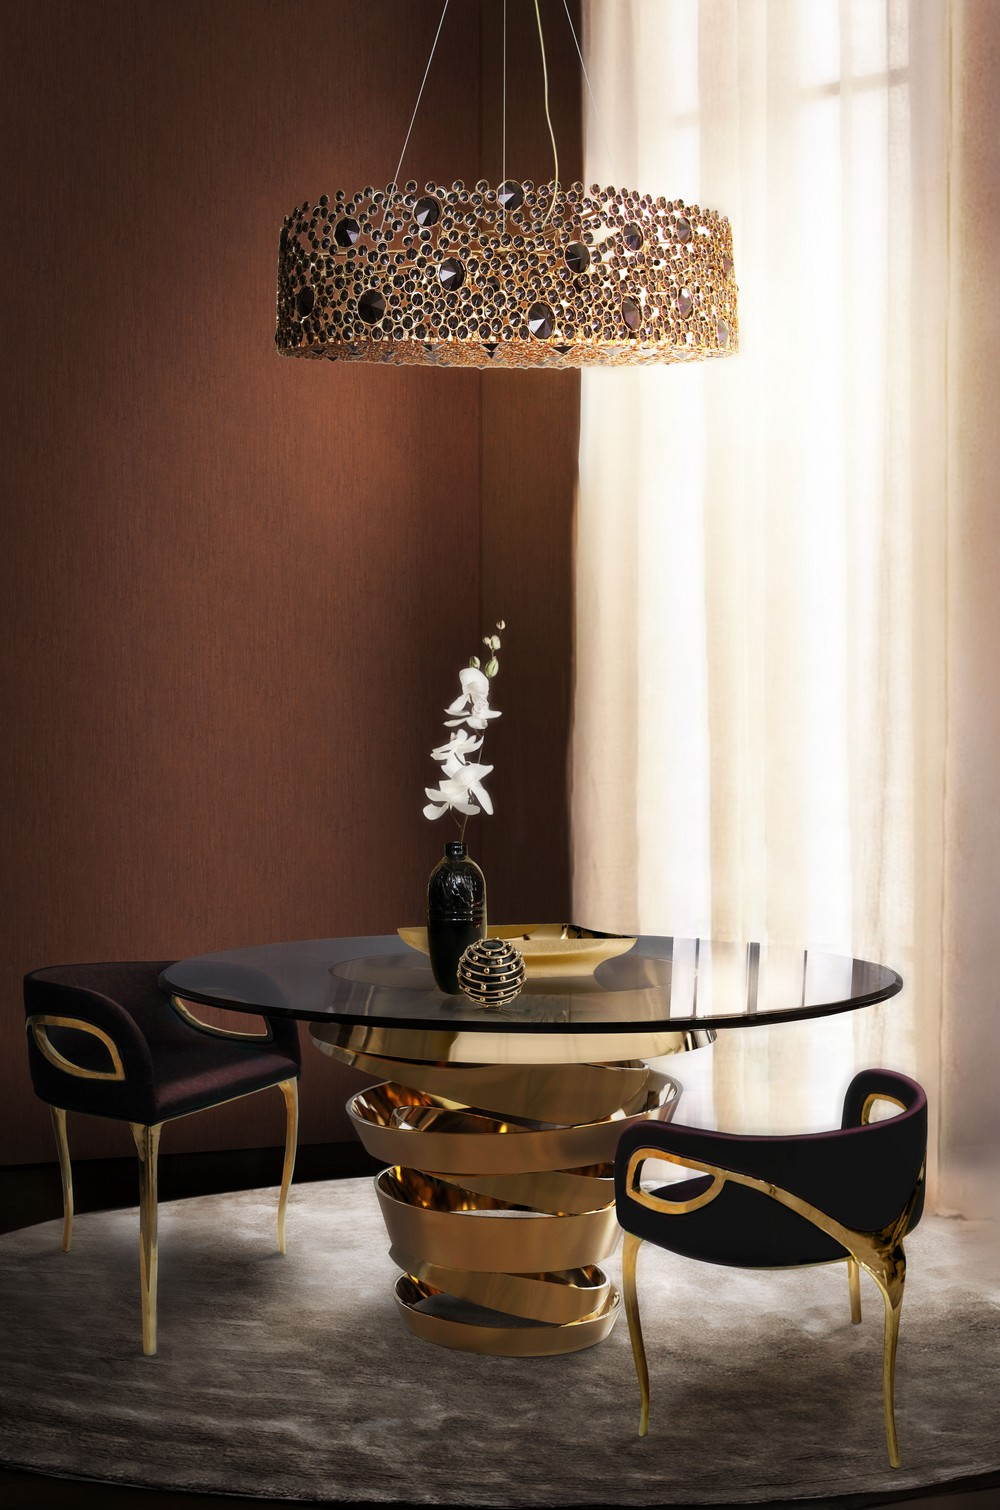 10 Gorgeous Design Pieces to Create the Perfect Dining Room design pieces 10 Gorgeous Design Pieces to Create the Perfect Dining Room 10 Amazing Dining Room Decoration Ideas That Will Delight You3 1